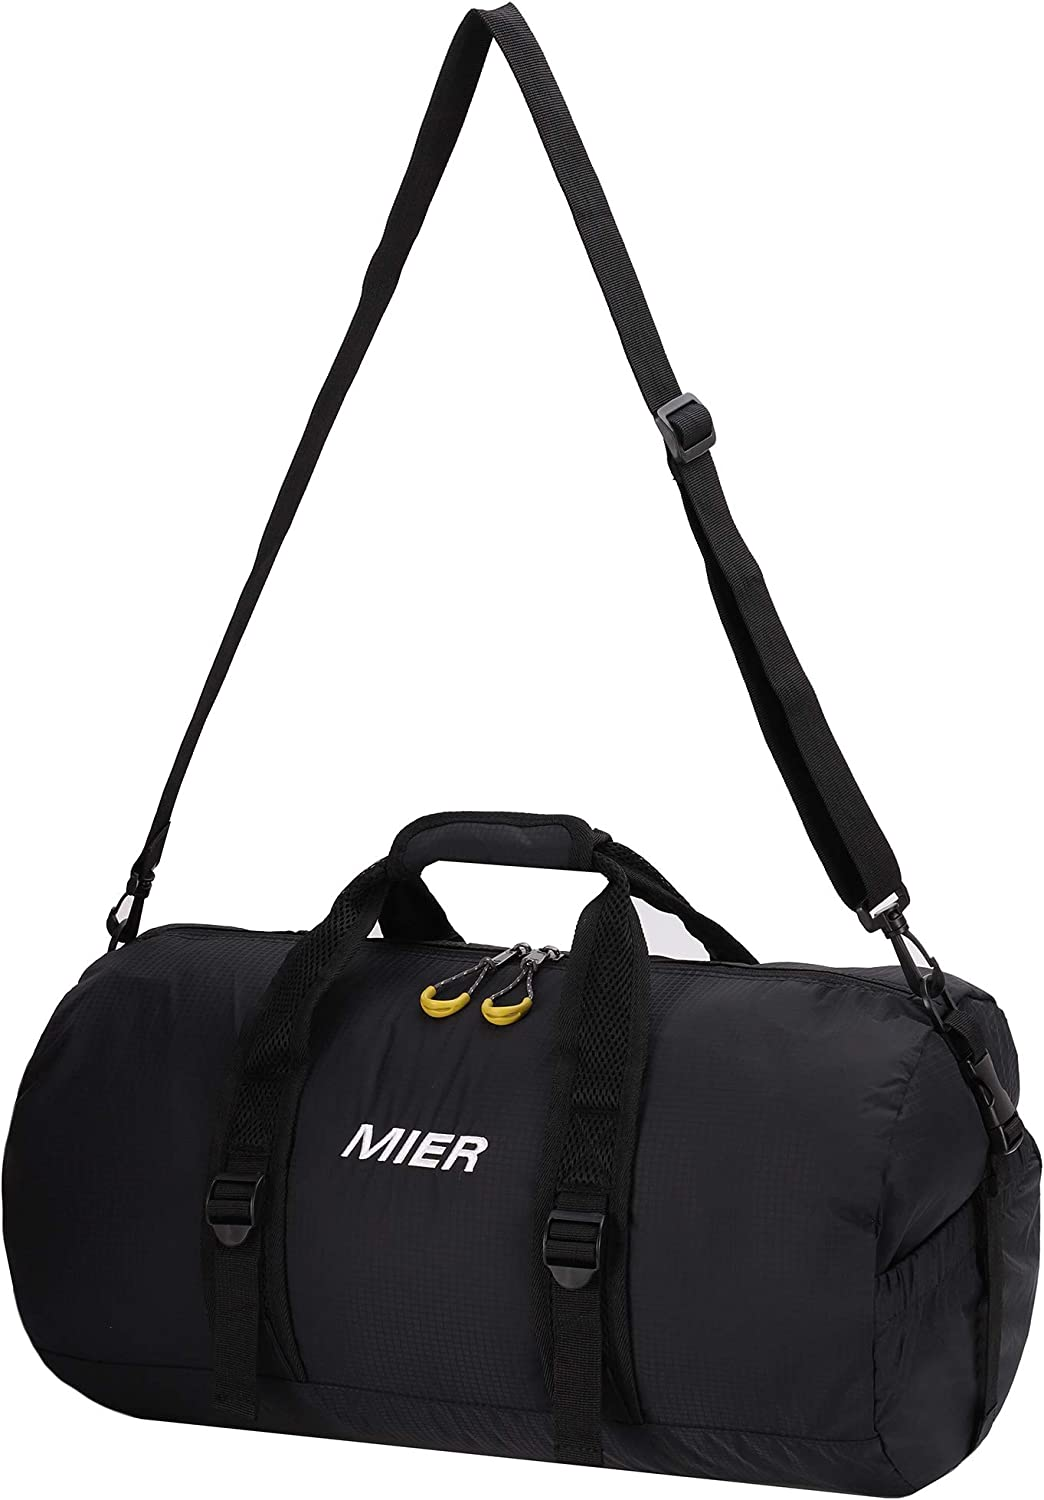 Travel Foldable Waterproof Duffel Bag – Lightweight Carry Storage Luggage Tote Duffel Bag.